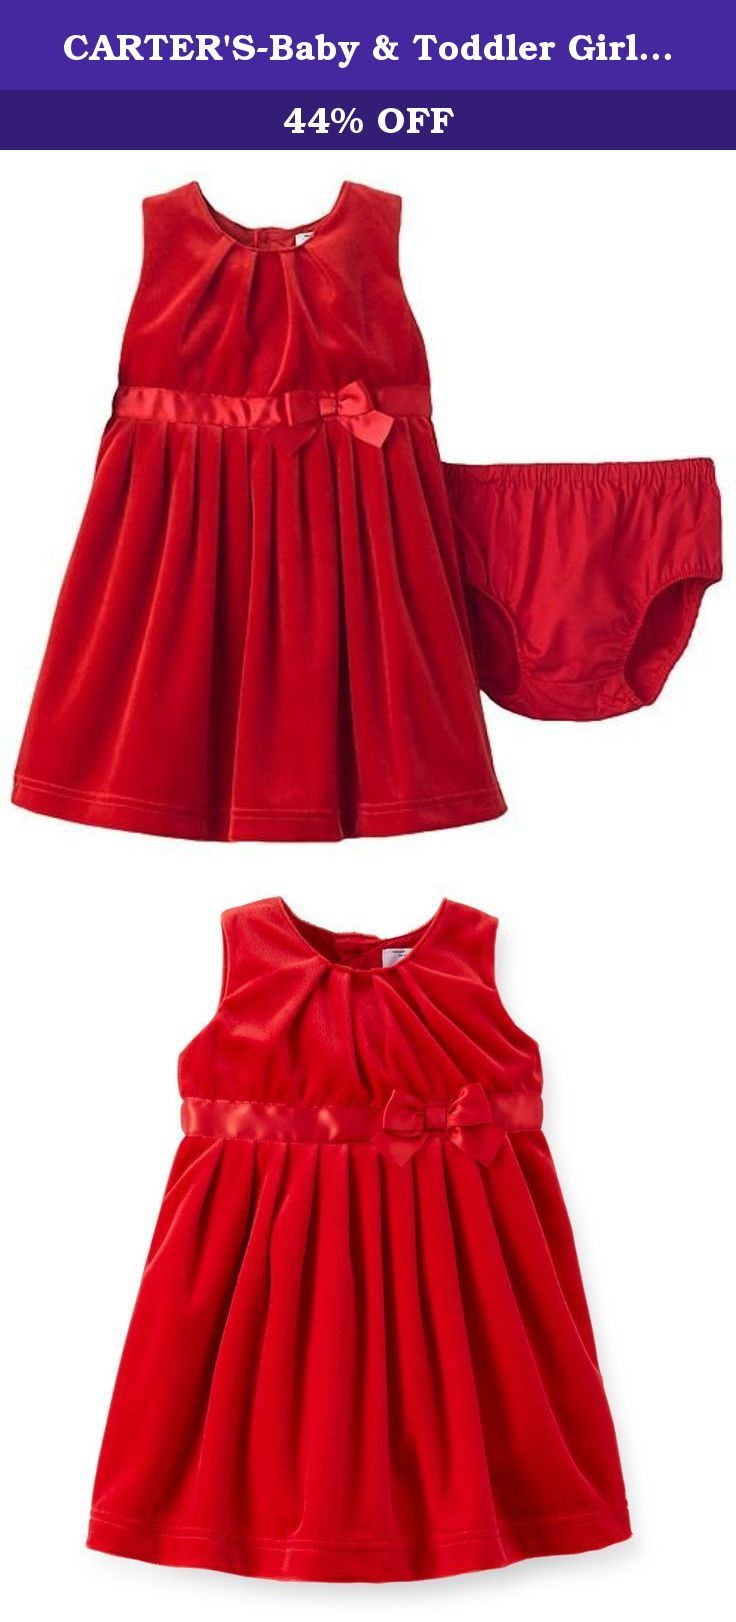 CARTER'S-Baby & Toddler Girl Special Occasion Dress-Diaper Cover-Satin Bow (12M, Red Velour). Perfect for picture taking, holiday parties and special occasions, this velour dress will make her feel like a princess with a satin bow sash and taffeta-lined skirt for added volume and flounce.